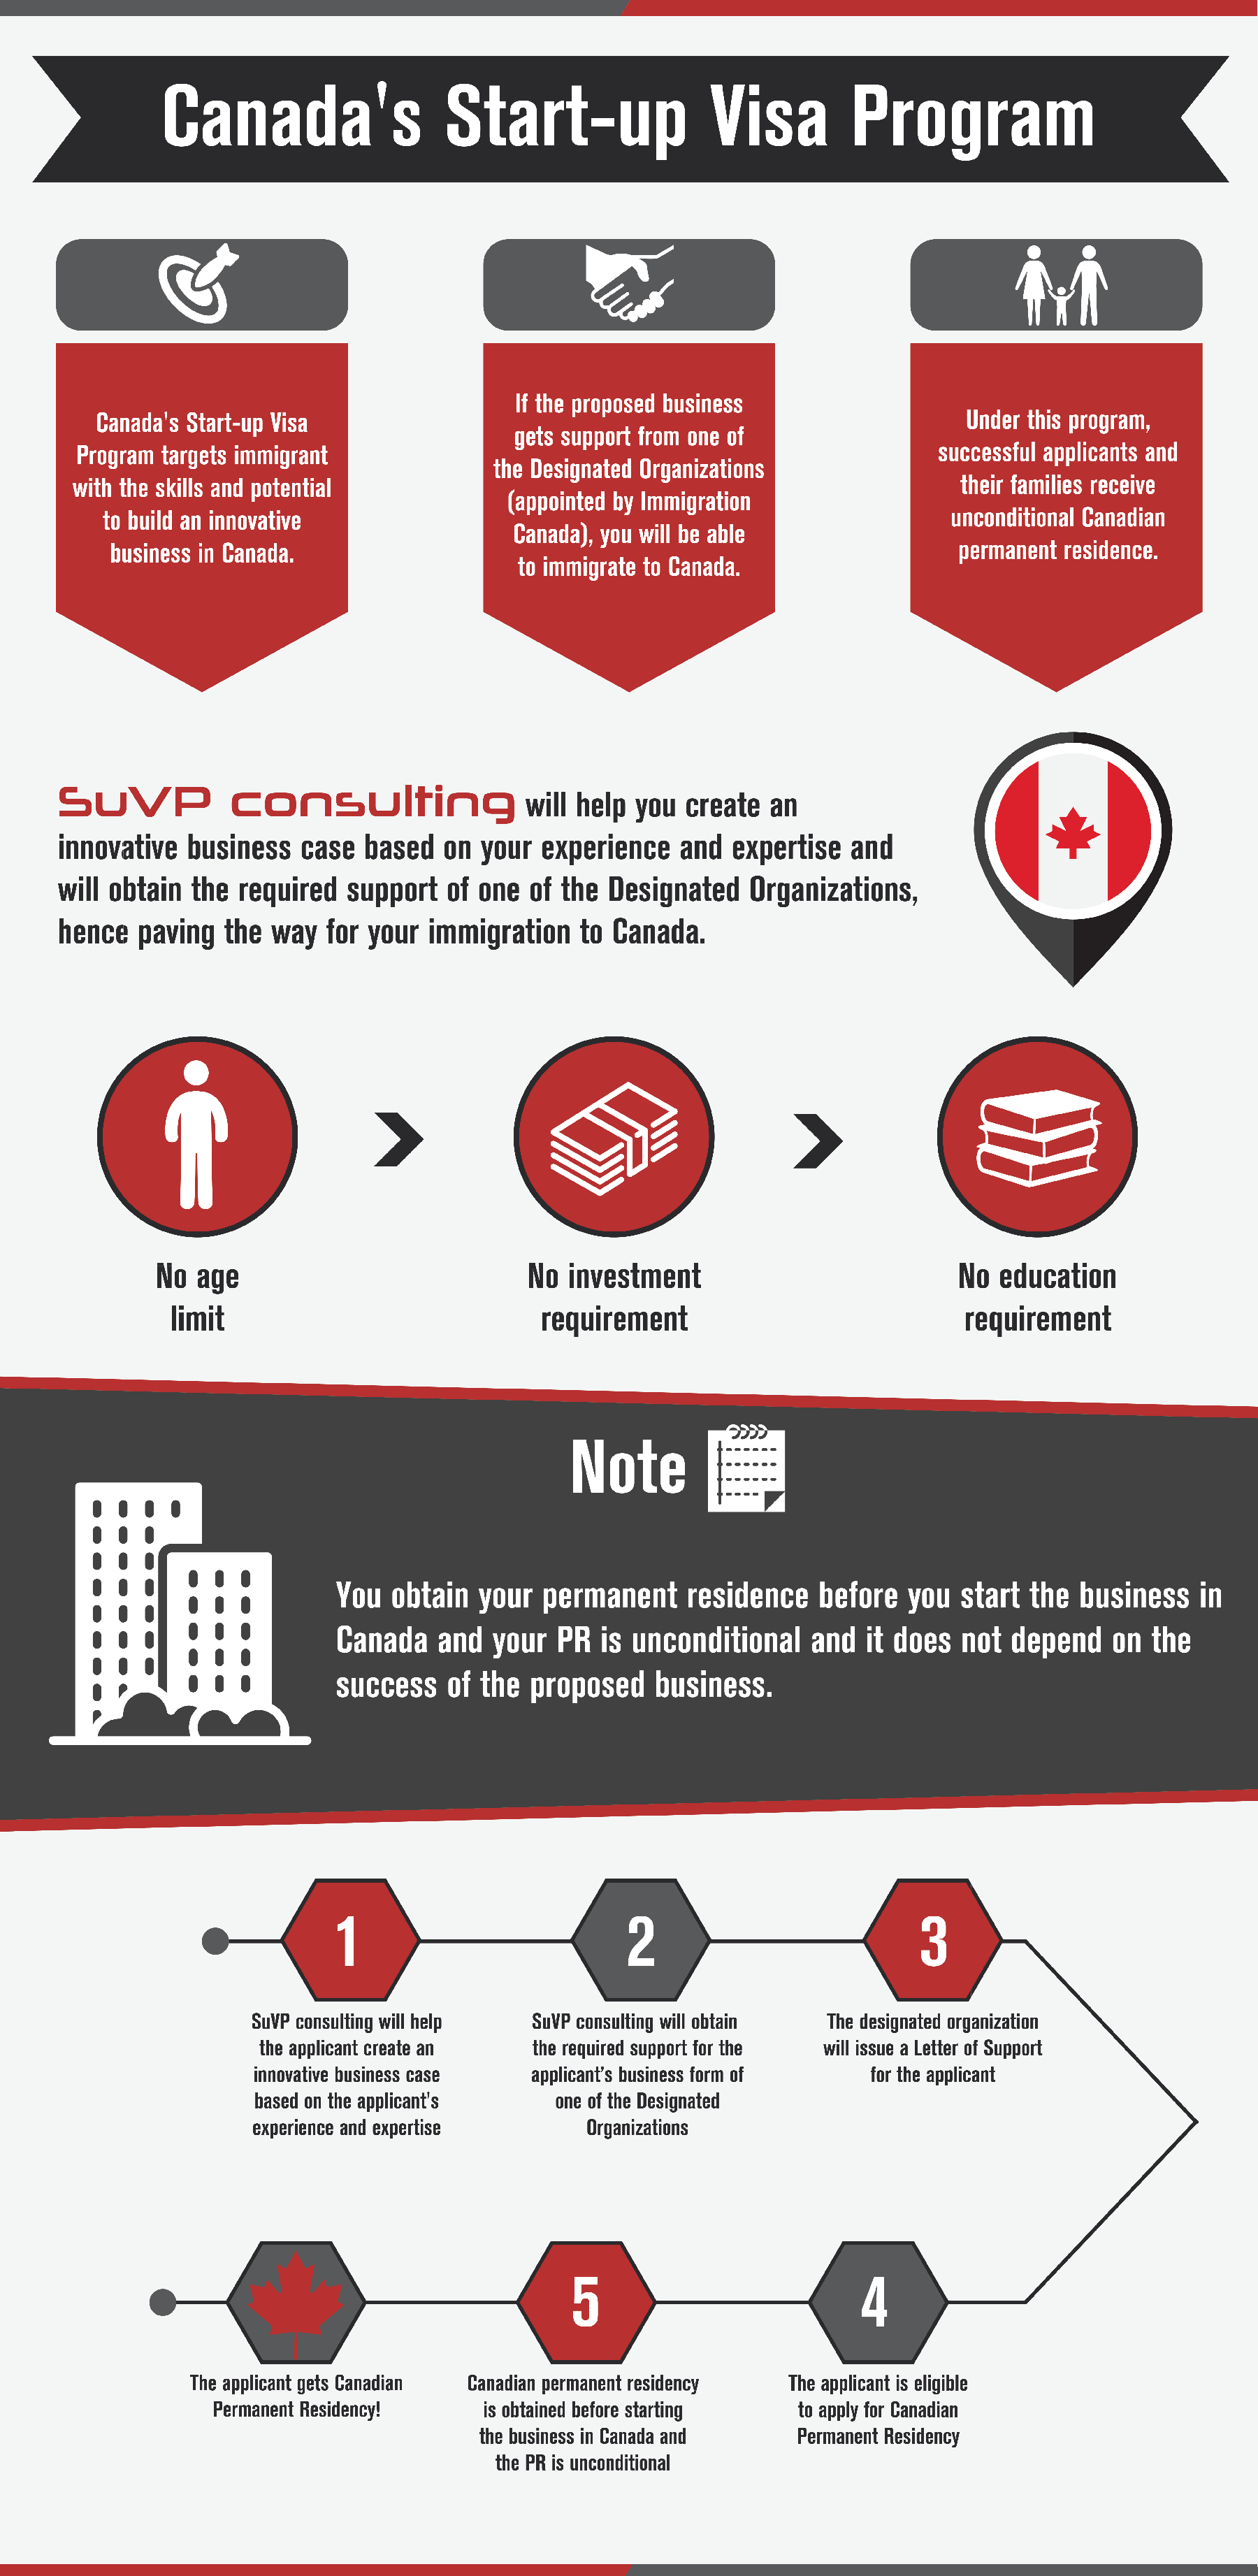 About Suvp Consulting Inc